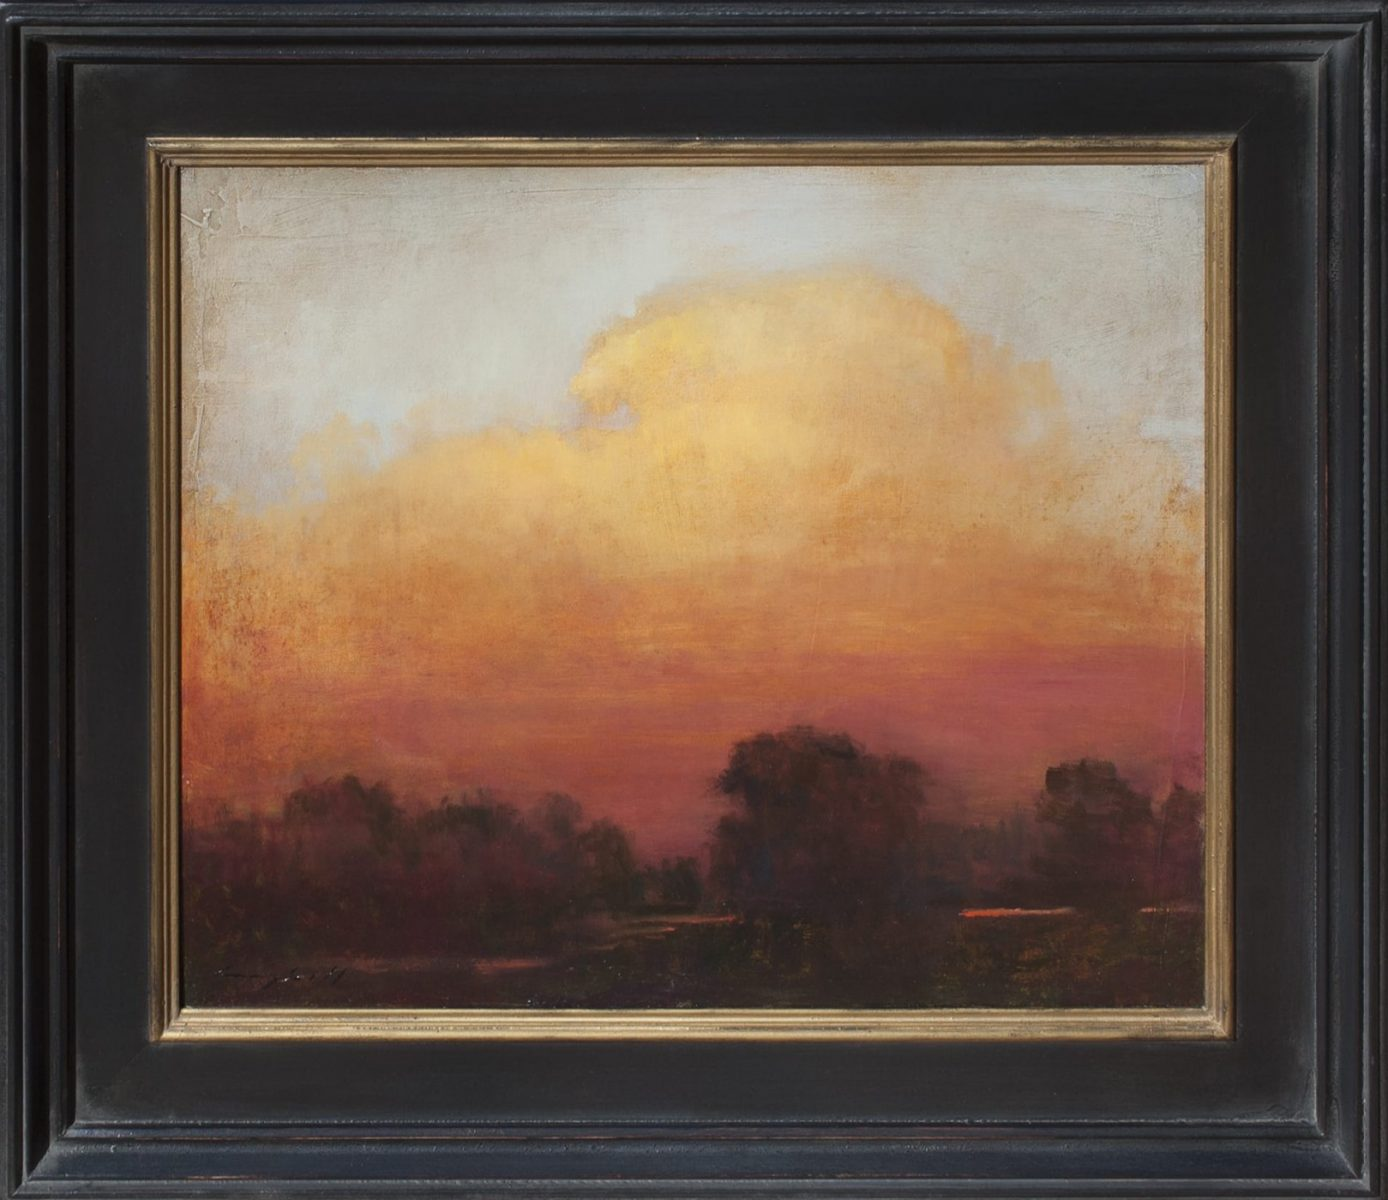 Eventide landscape oil painting by Peter Campbell